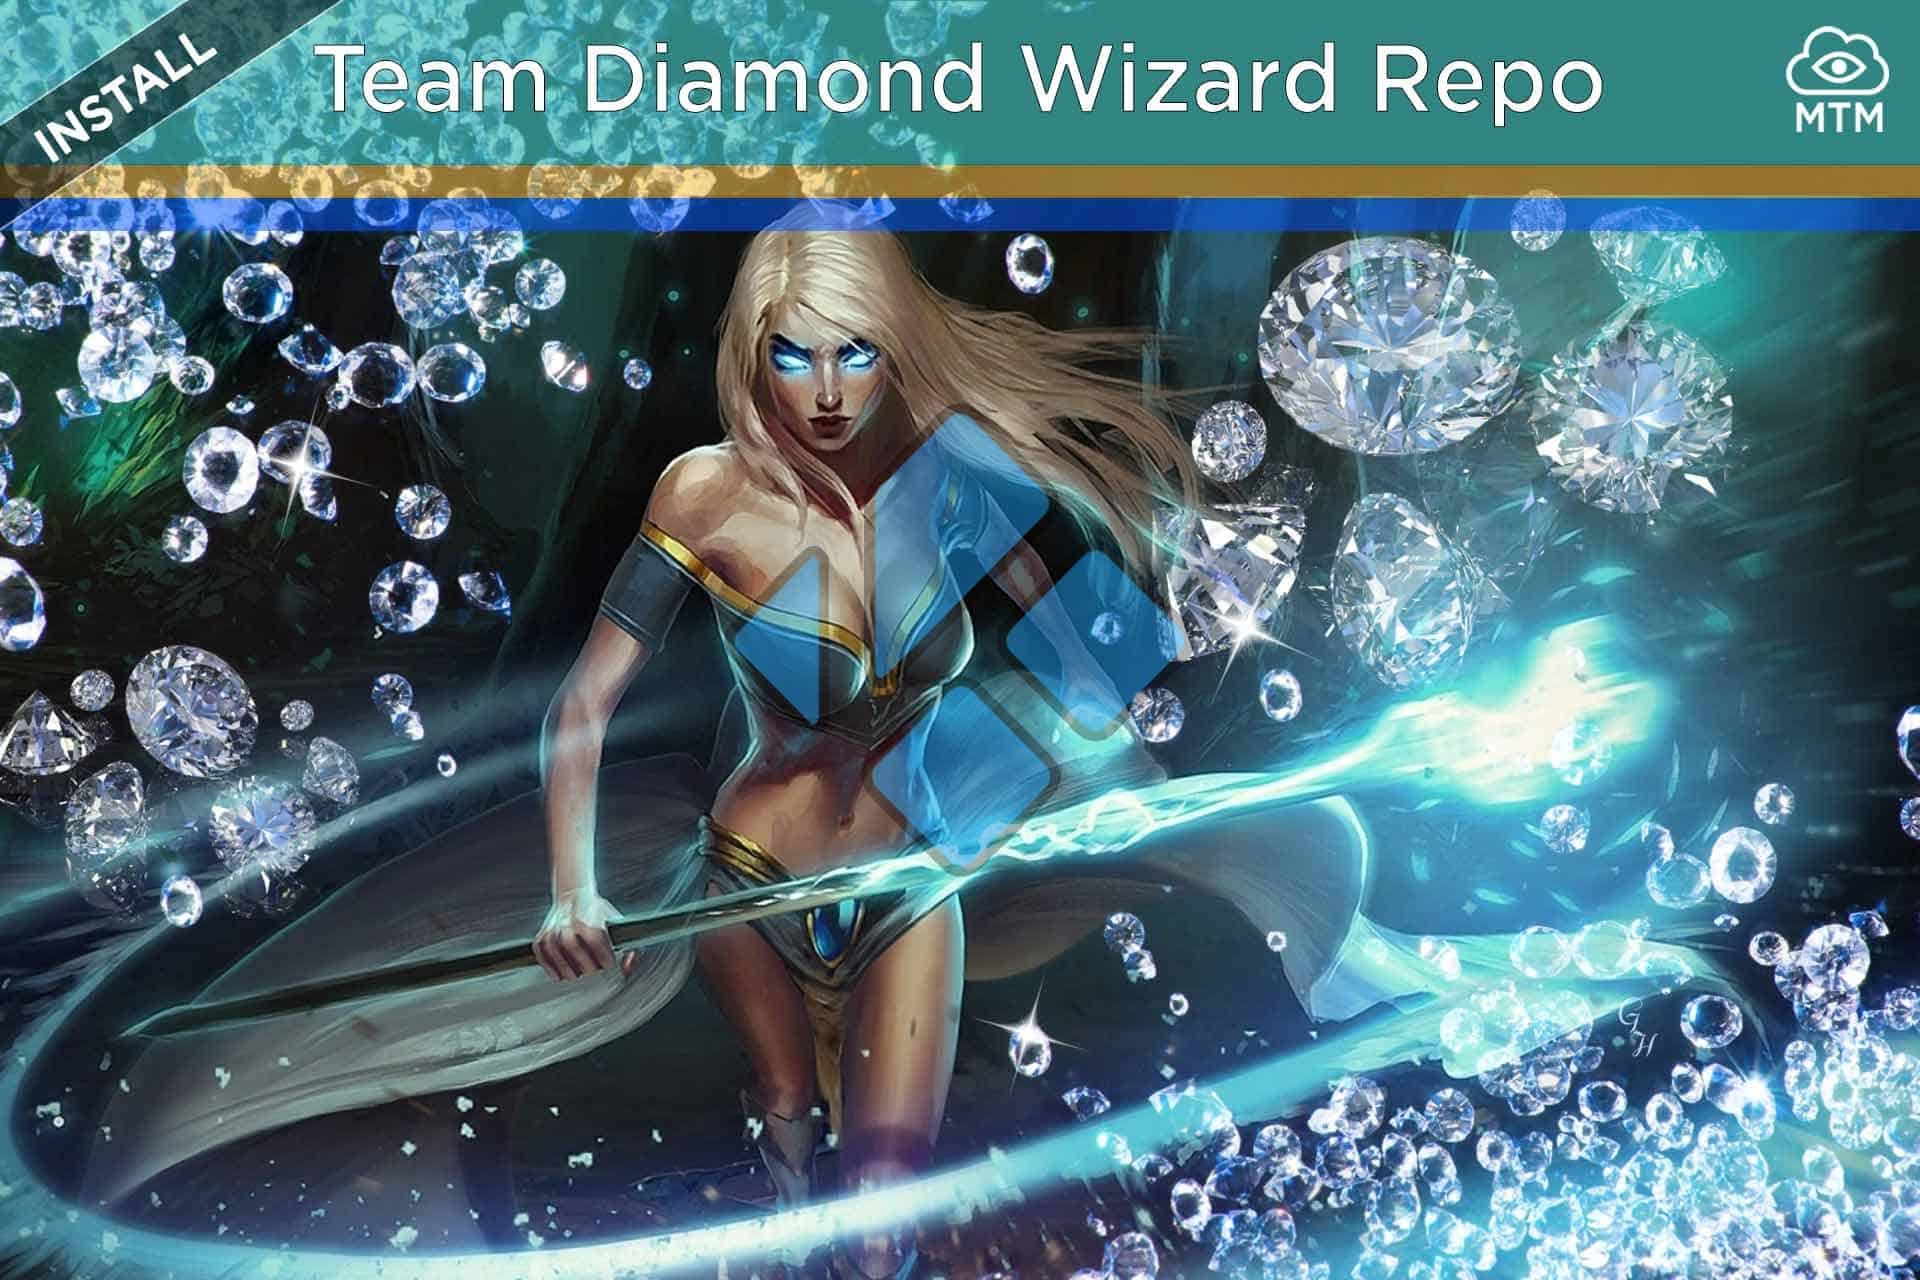 How to Install Team Diamond Wizard Repository